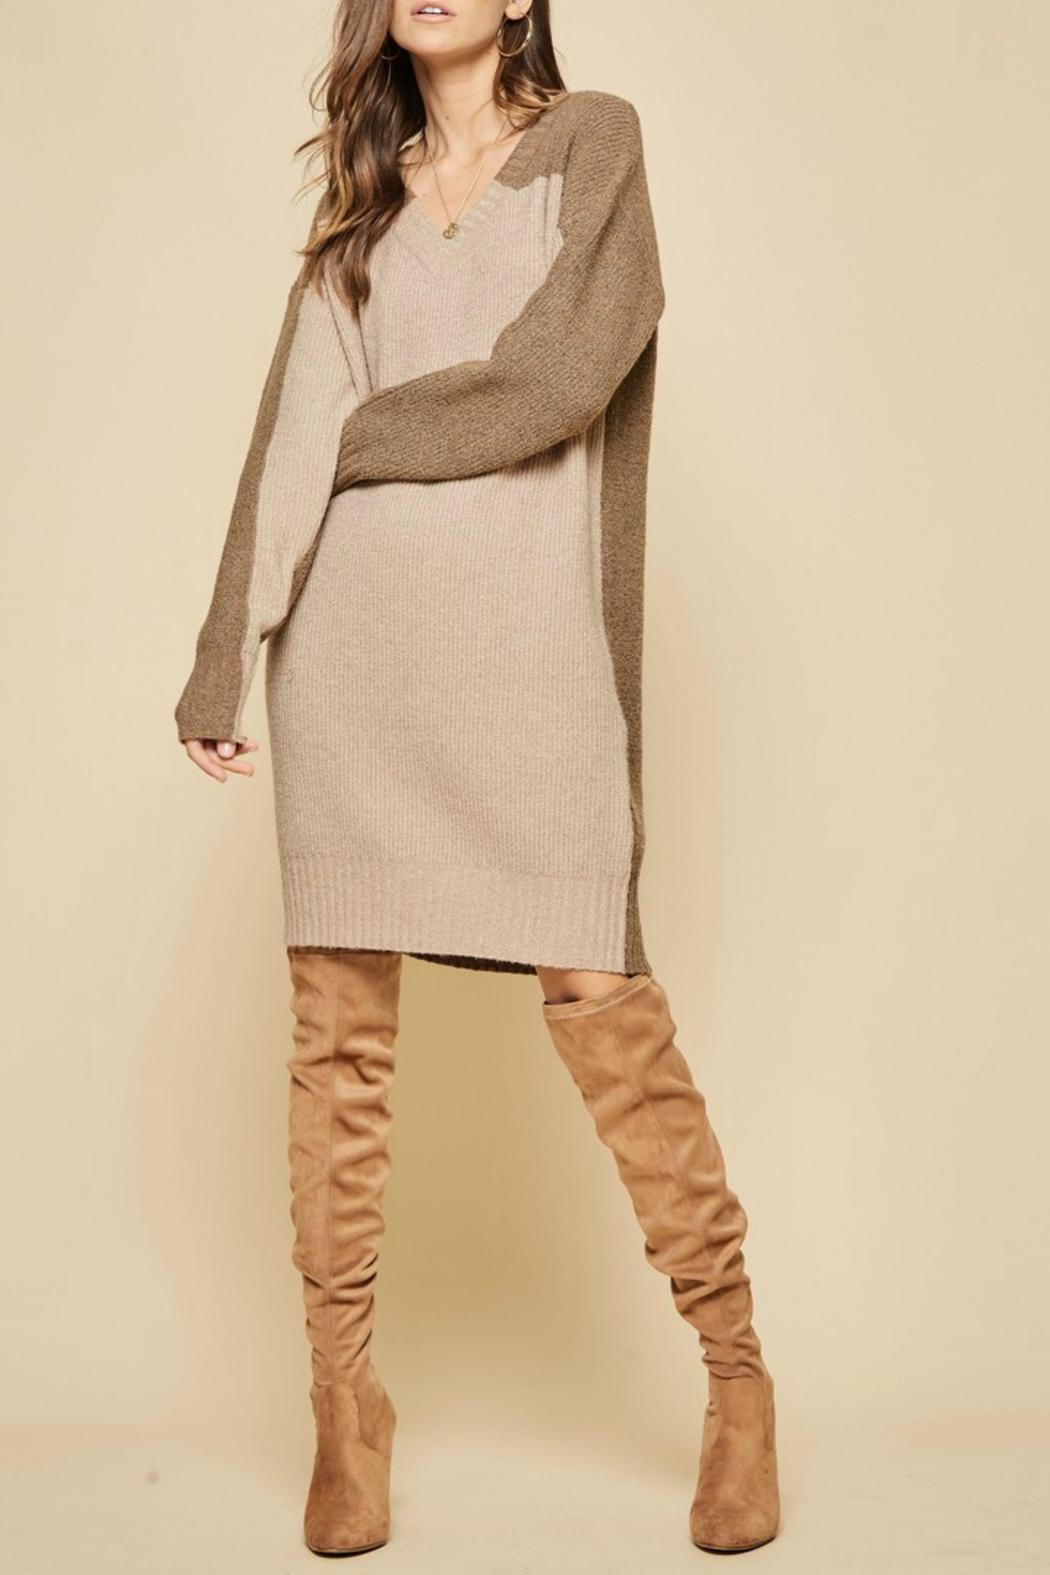 Andree by Unit Colorblock Sweater Dress - Main Image